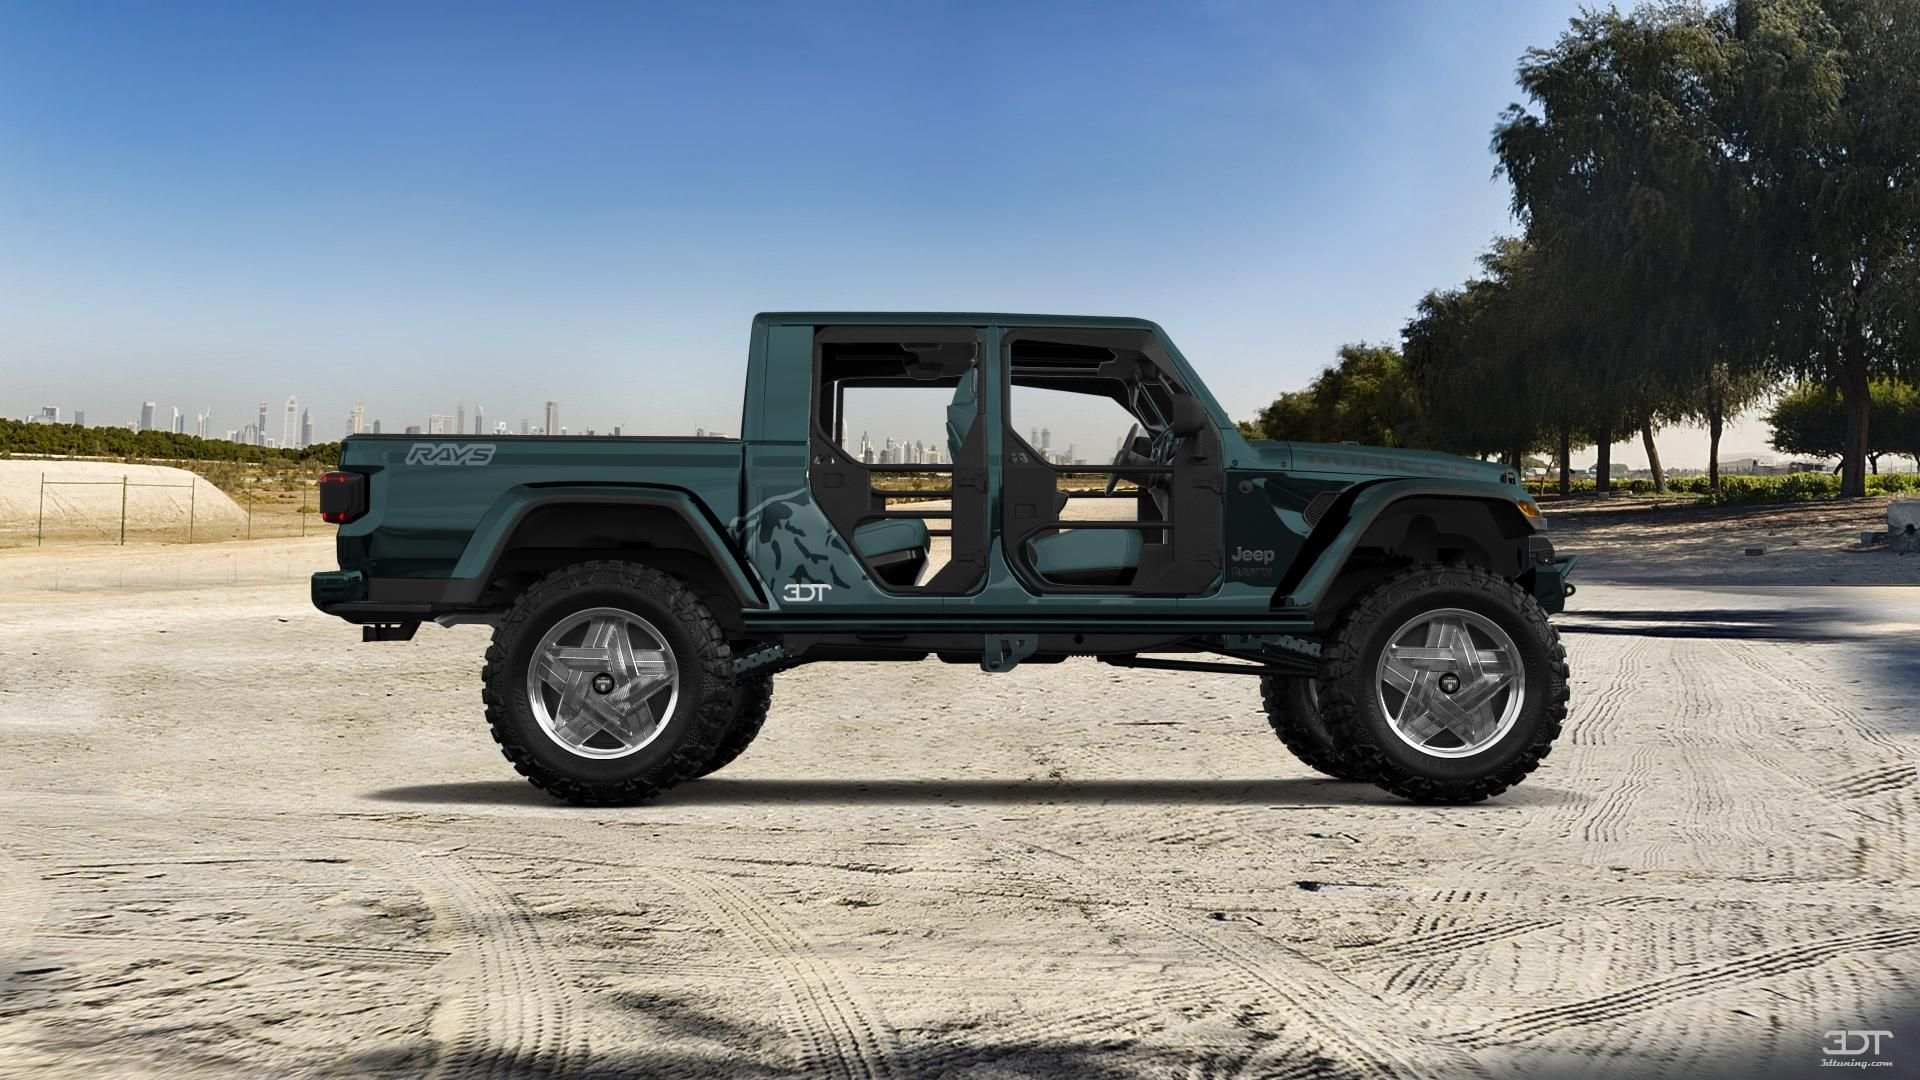 Checkout my tuning Jeep Gladiator 2020 at 3DTuning